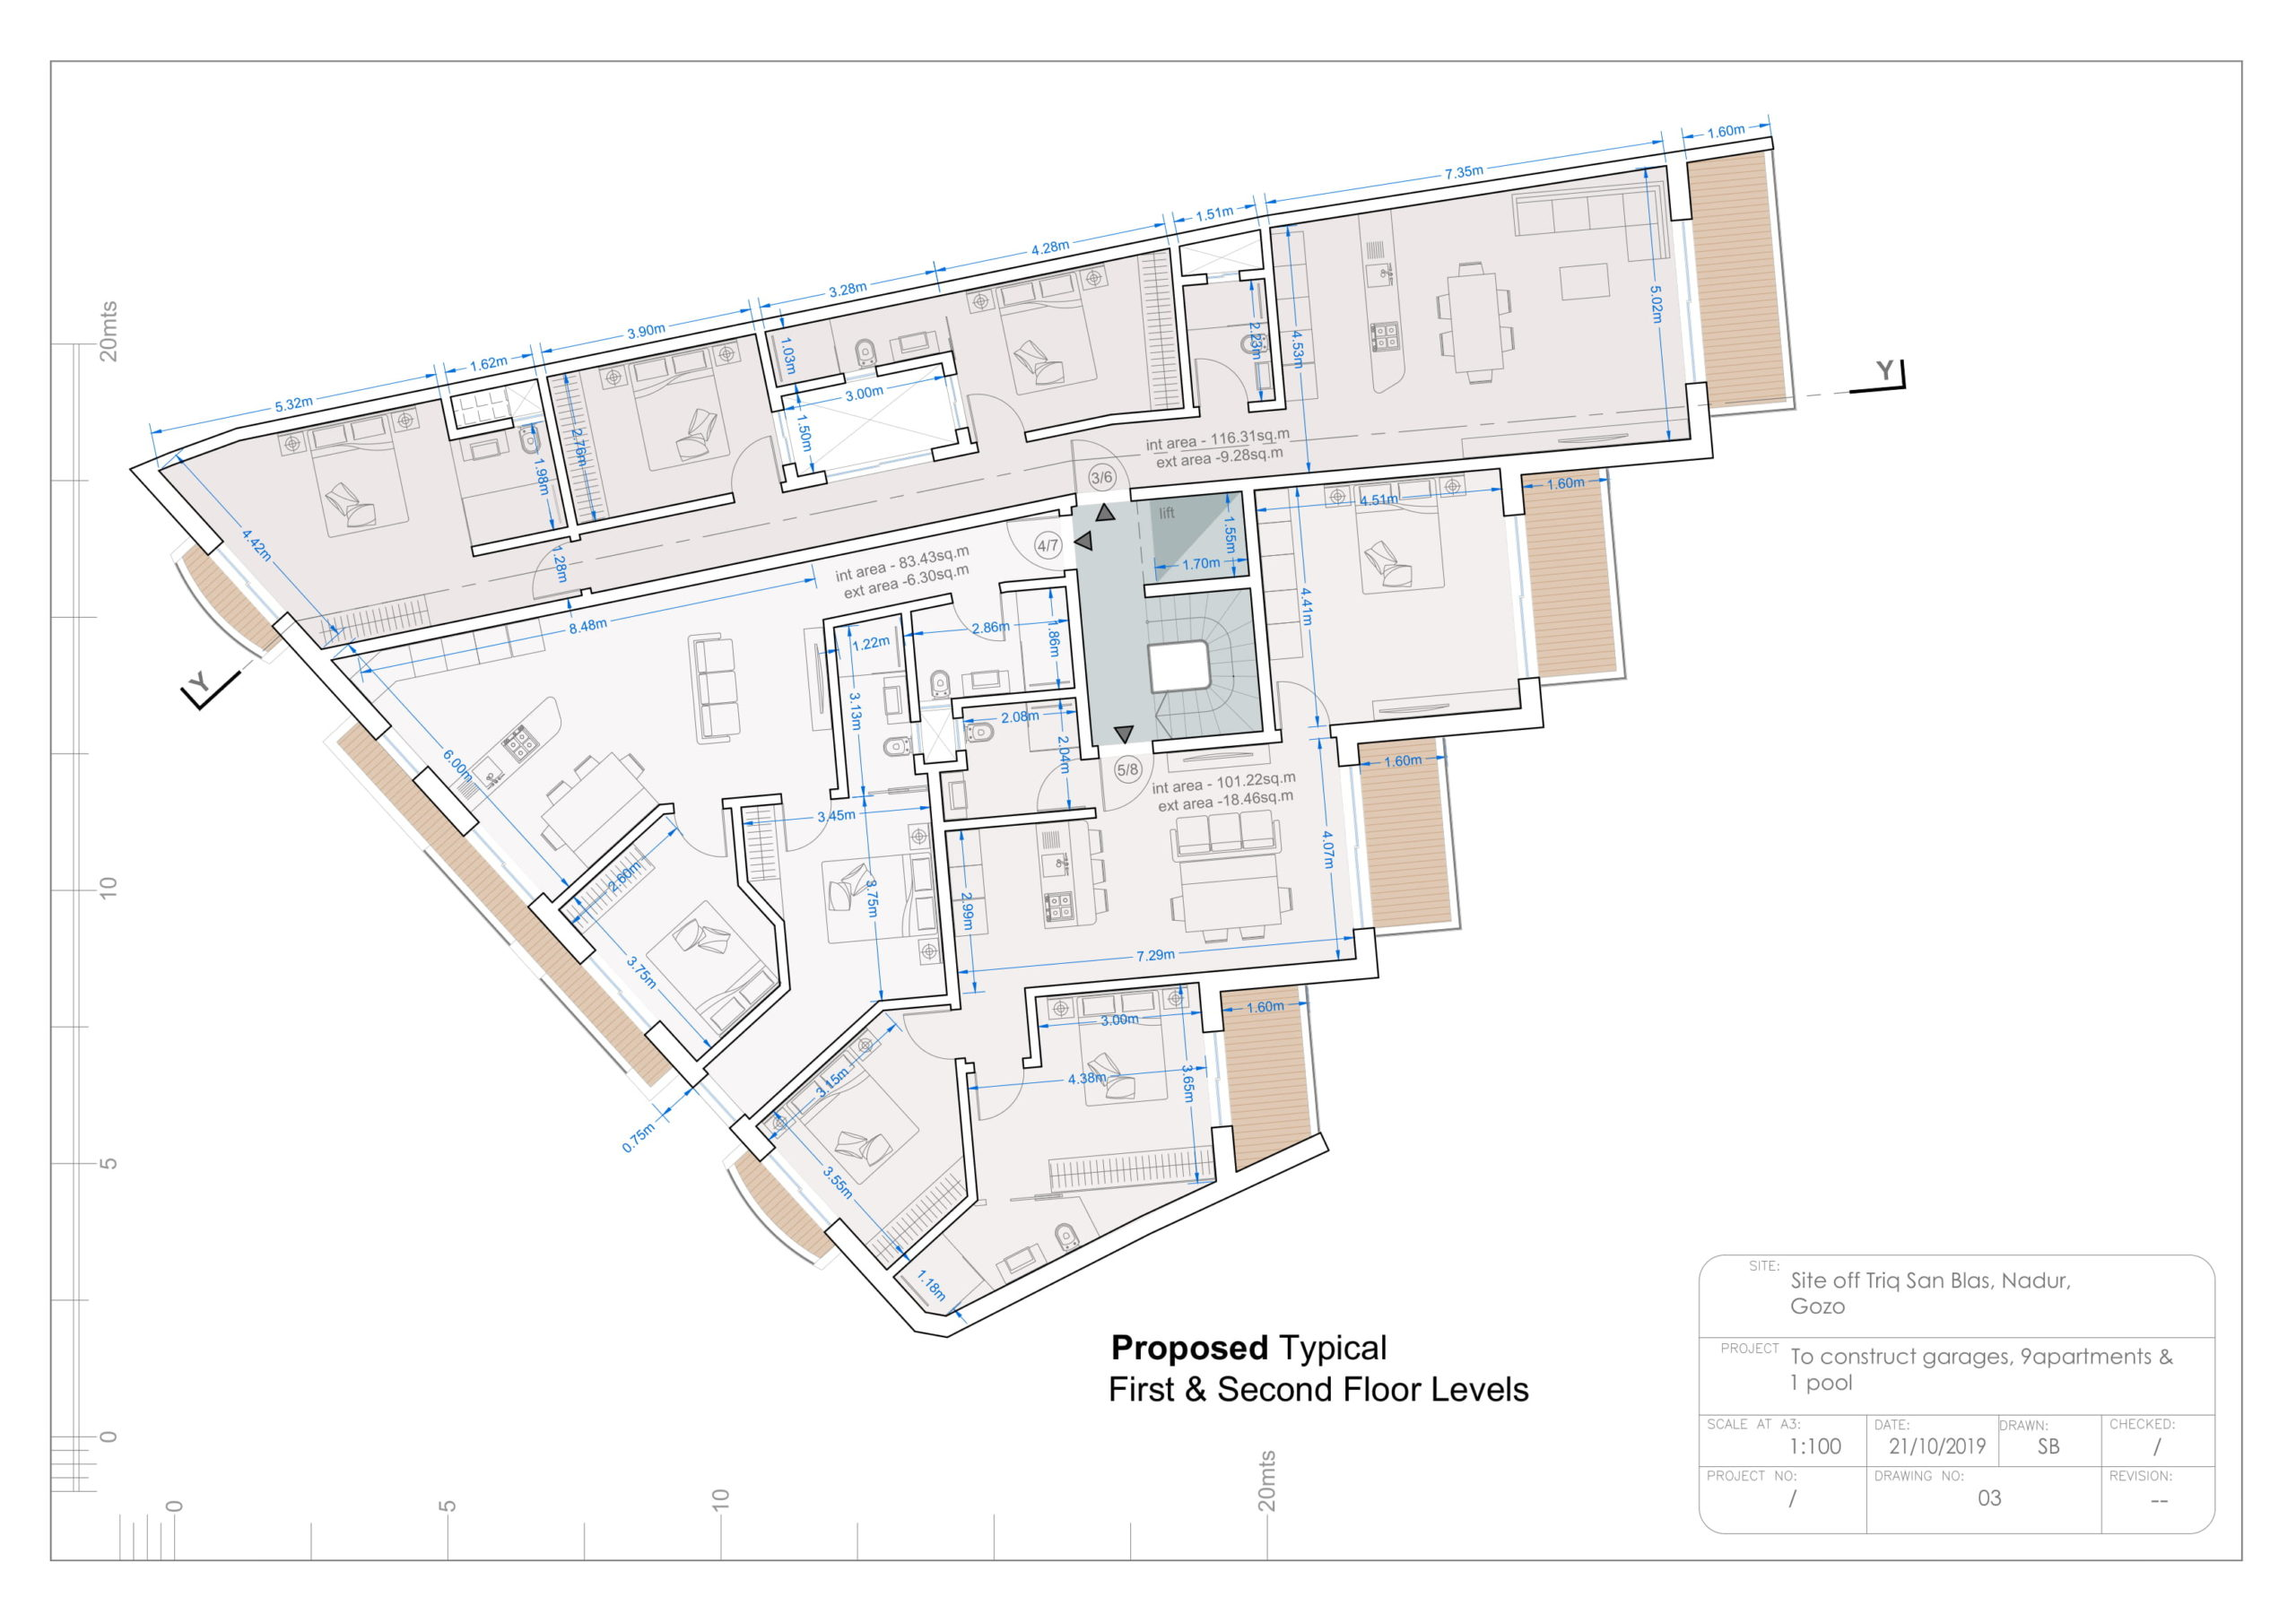 Dwg 03 - Proposed Typical Floor Levels-1